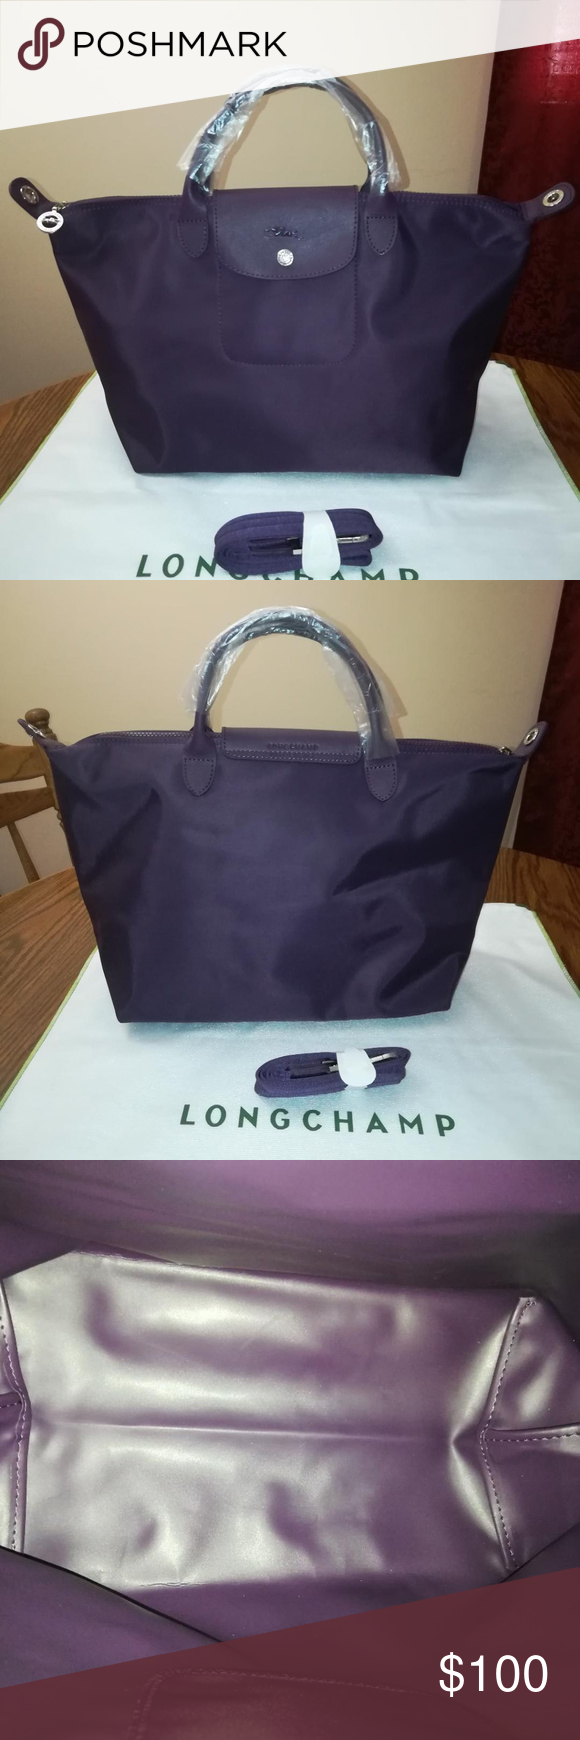 a428252973d9 Longchamp Le Pliage NEO Medium Bilberry EUC Longchamp Le Pliage NEO  Short-Top Handle Medium Made in France Silver Tone Hardware Measures   L17.75 x H10.5 x ...